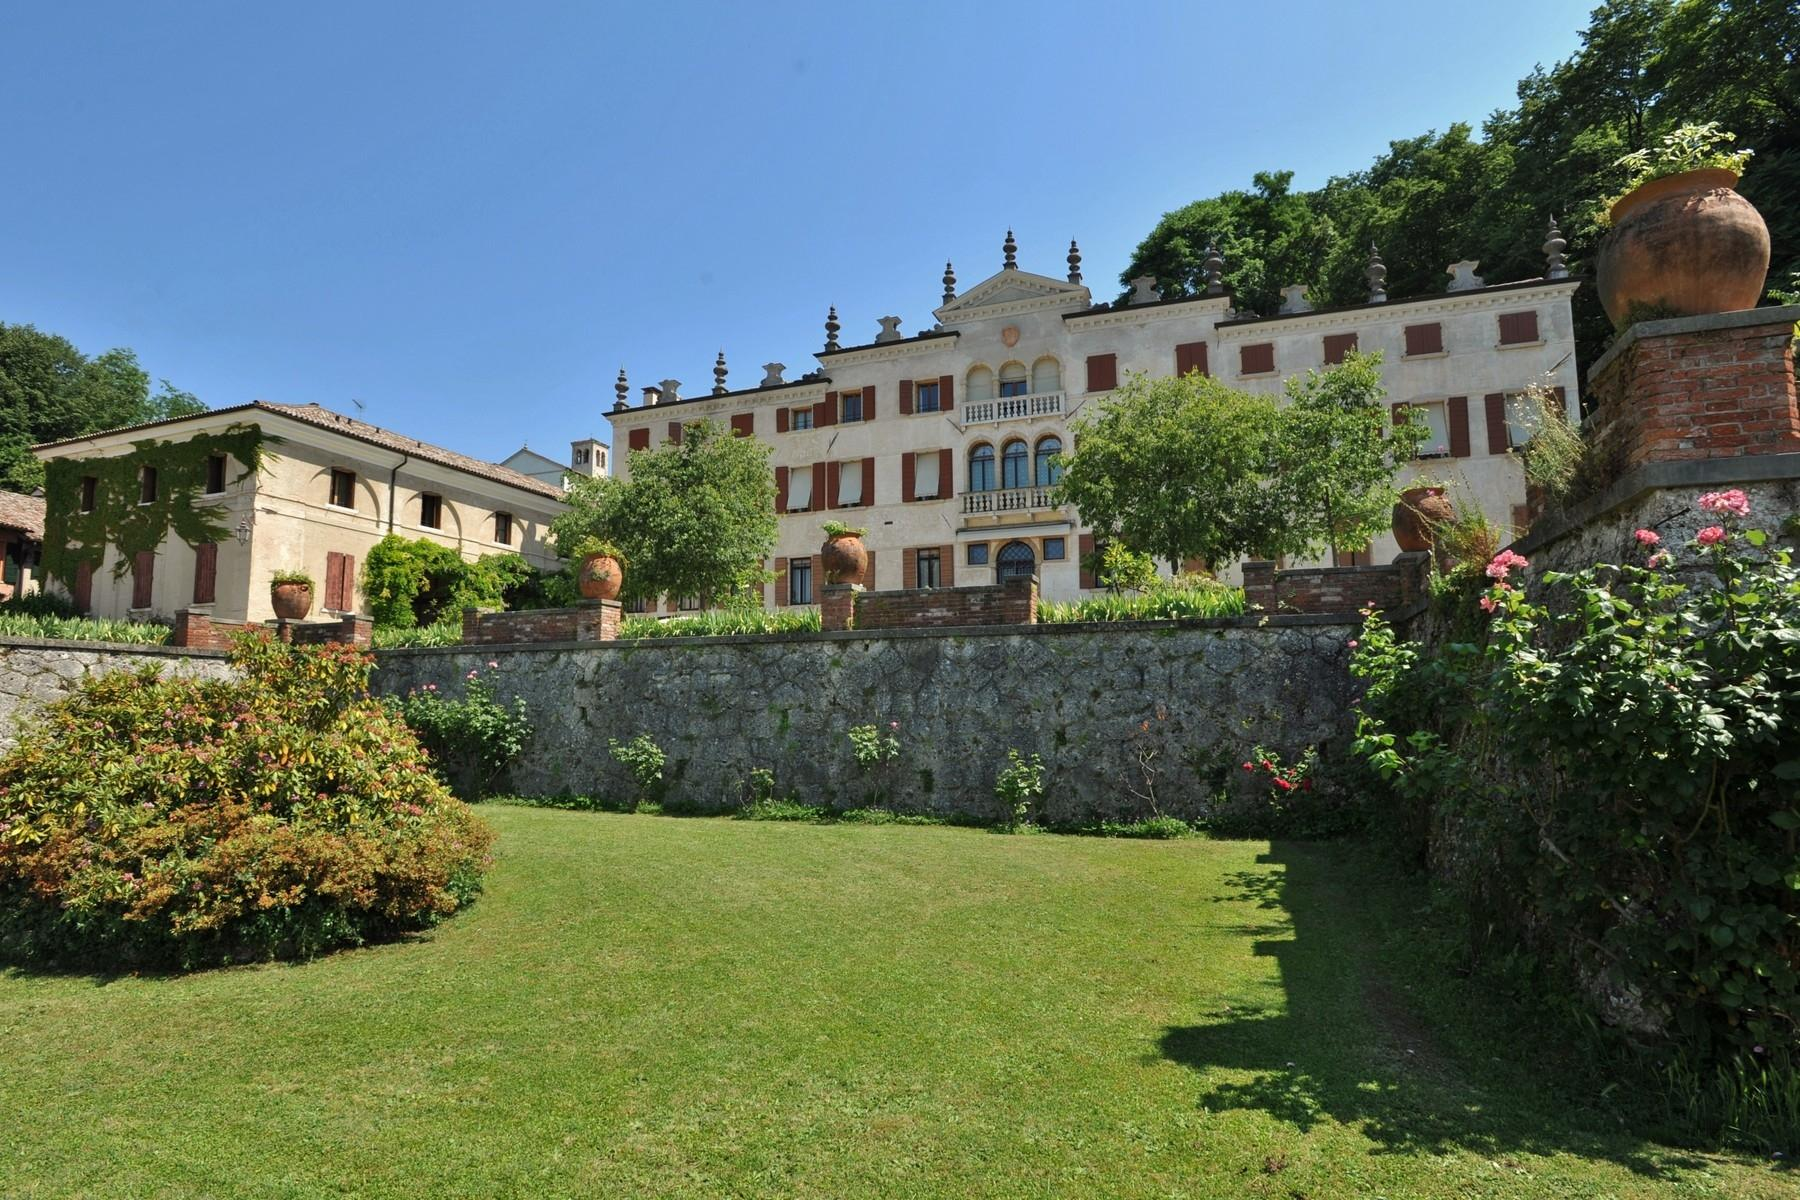 Classic Villa Veneta in the centre of Asolo (TV) - 1